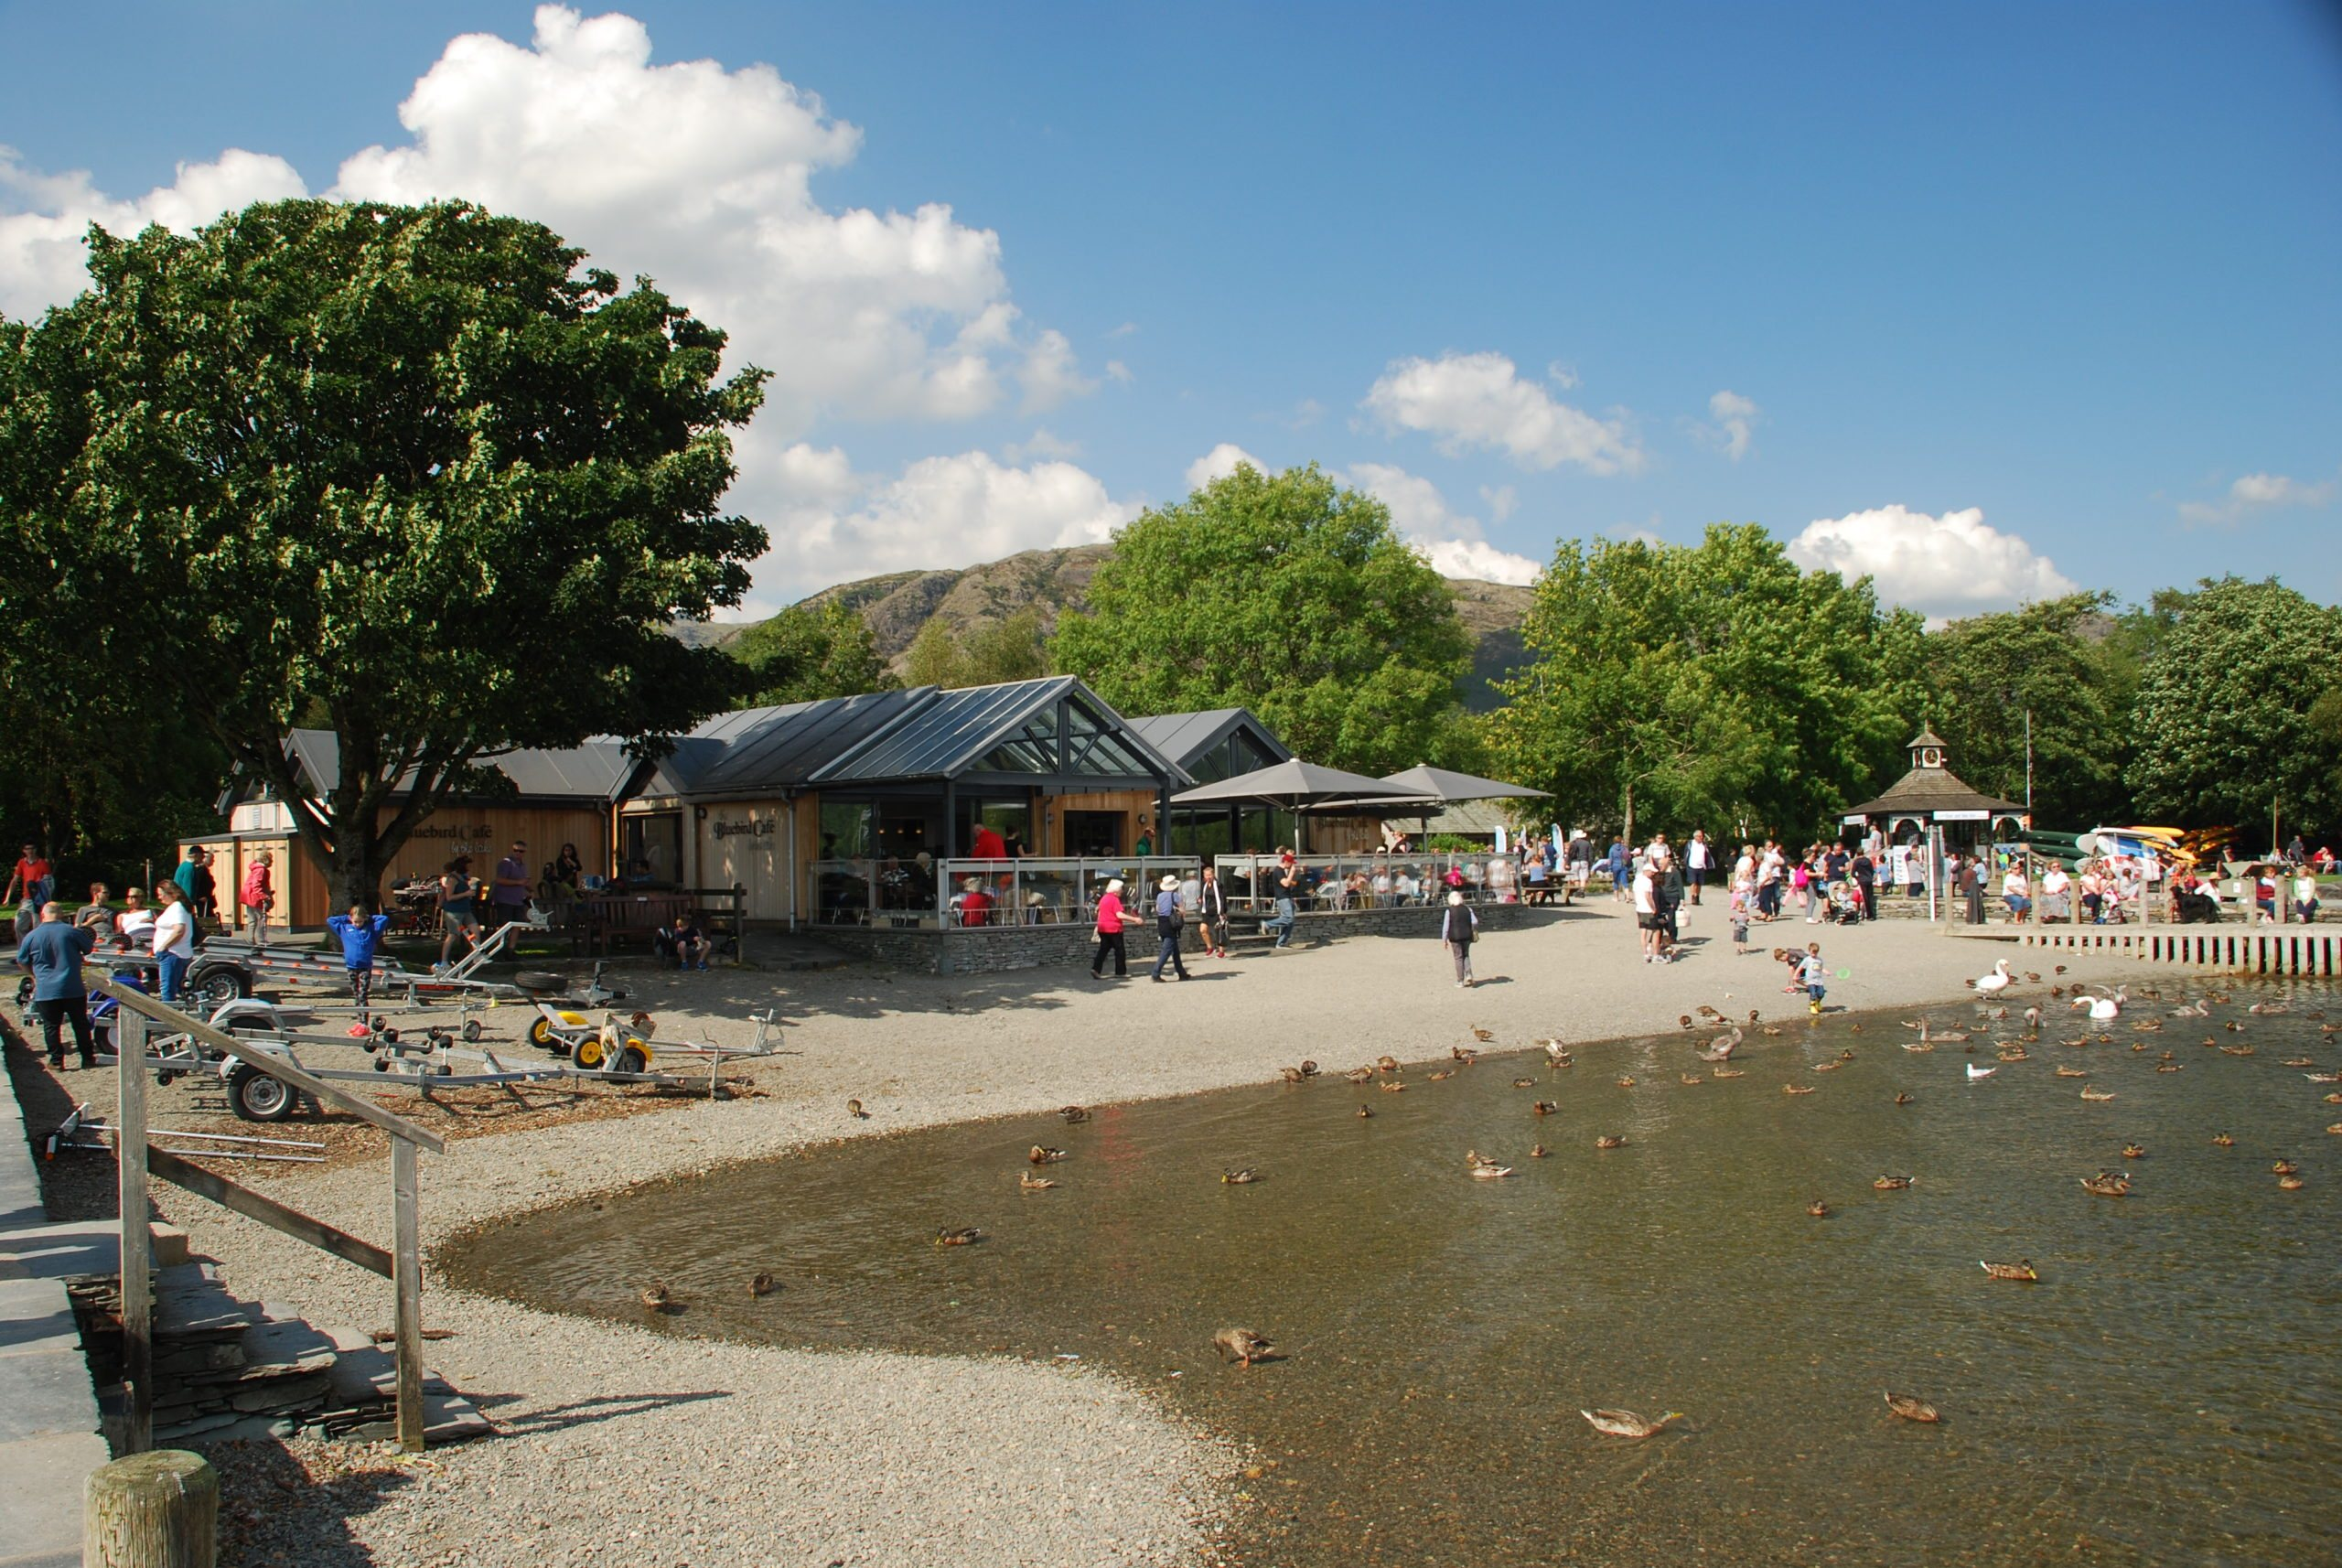 Image of Bluebird Cafe at Coniston Water